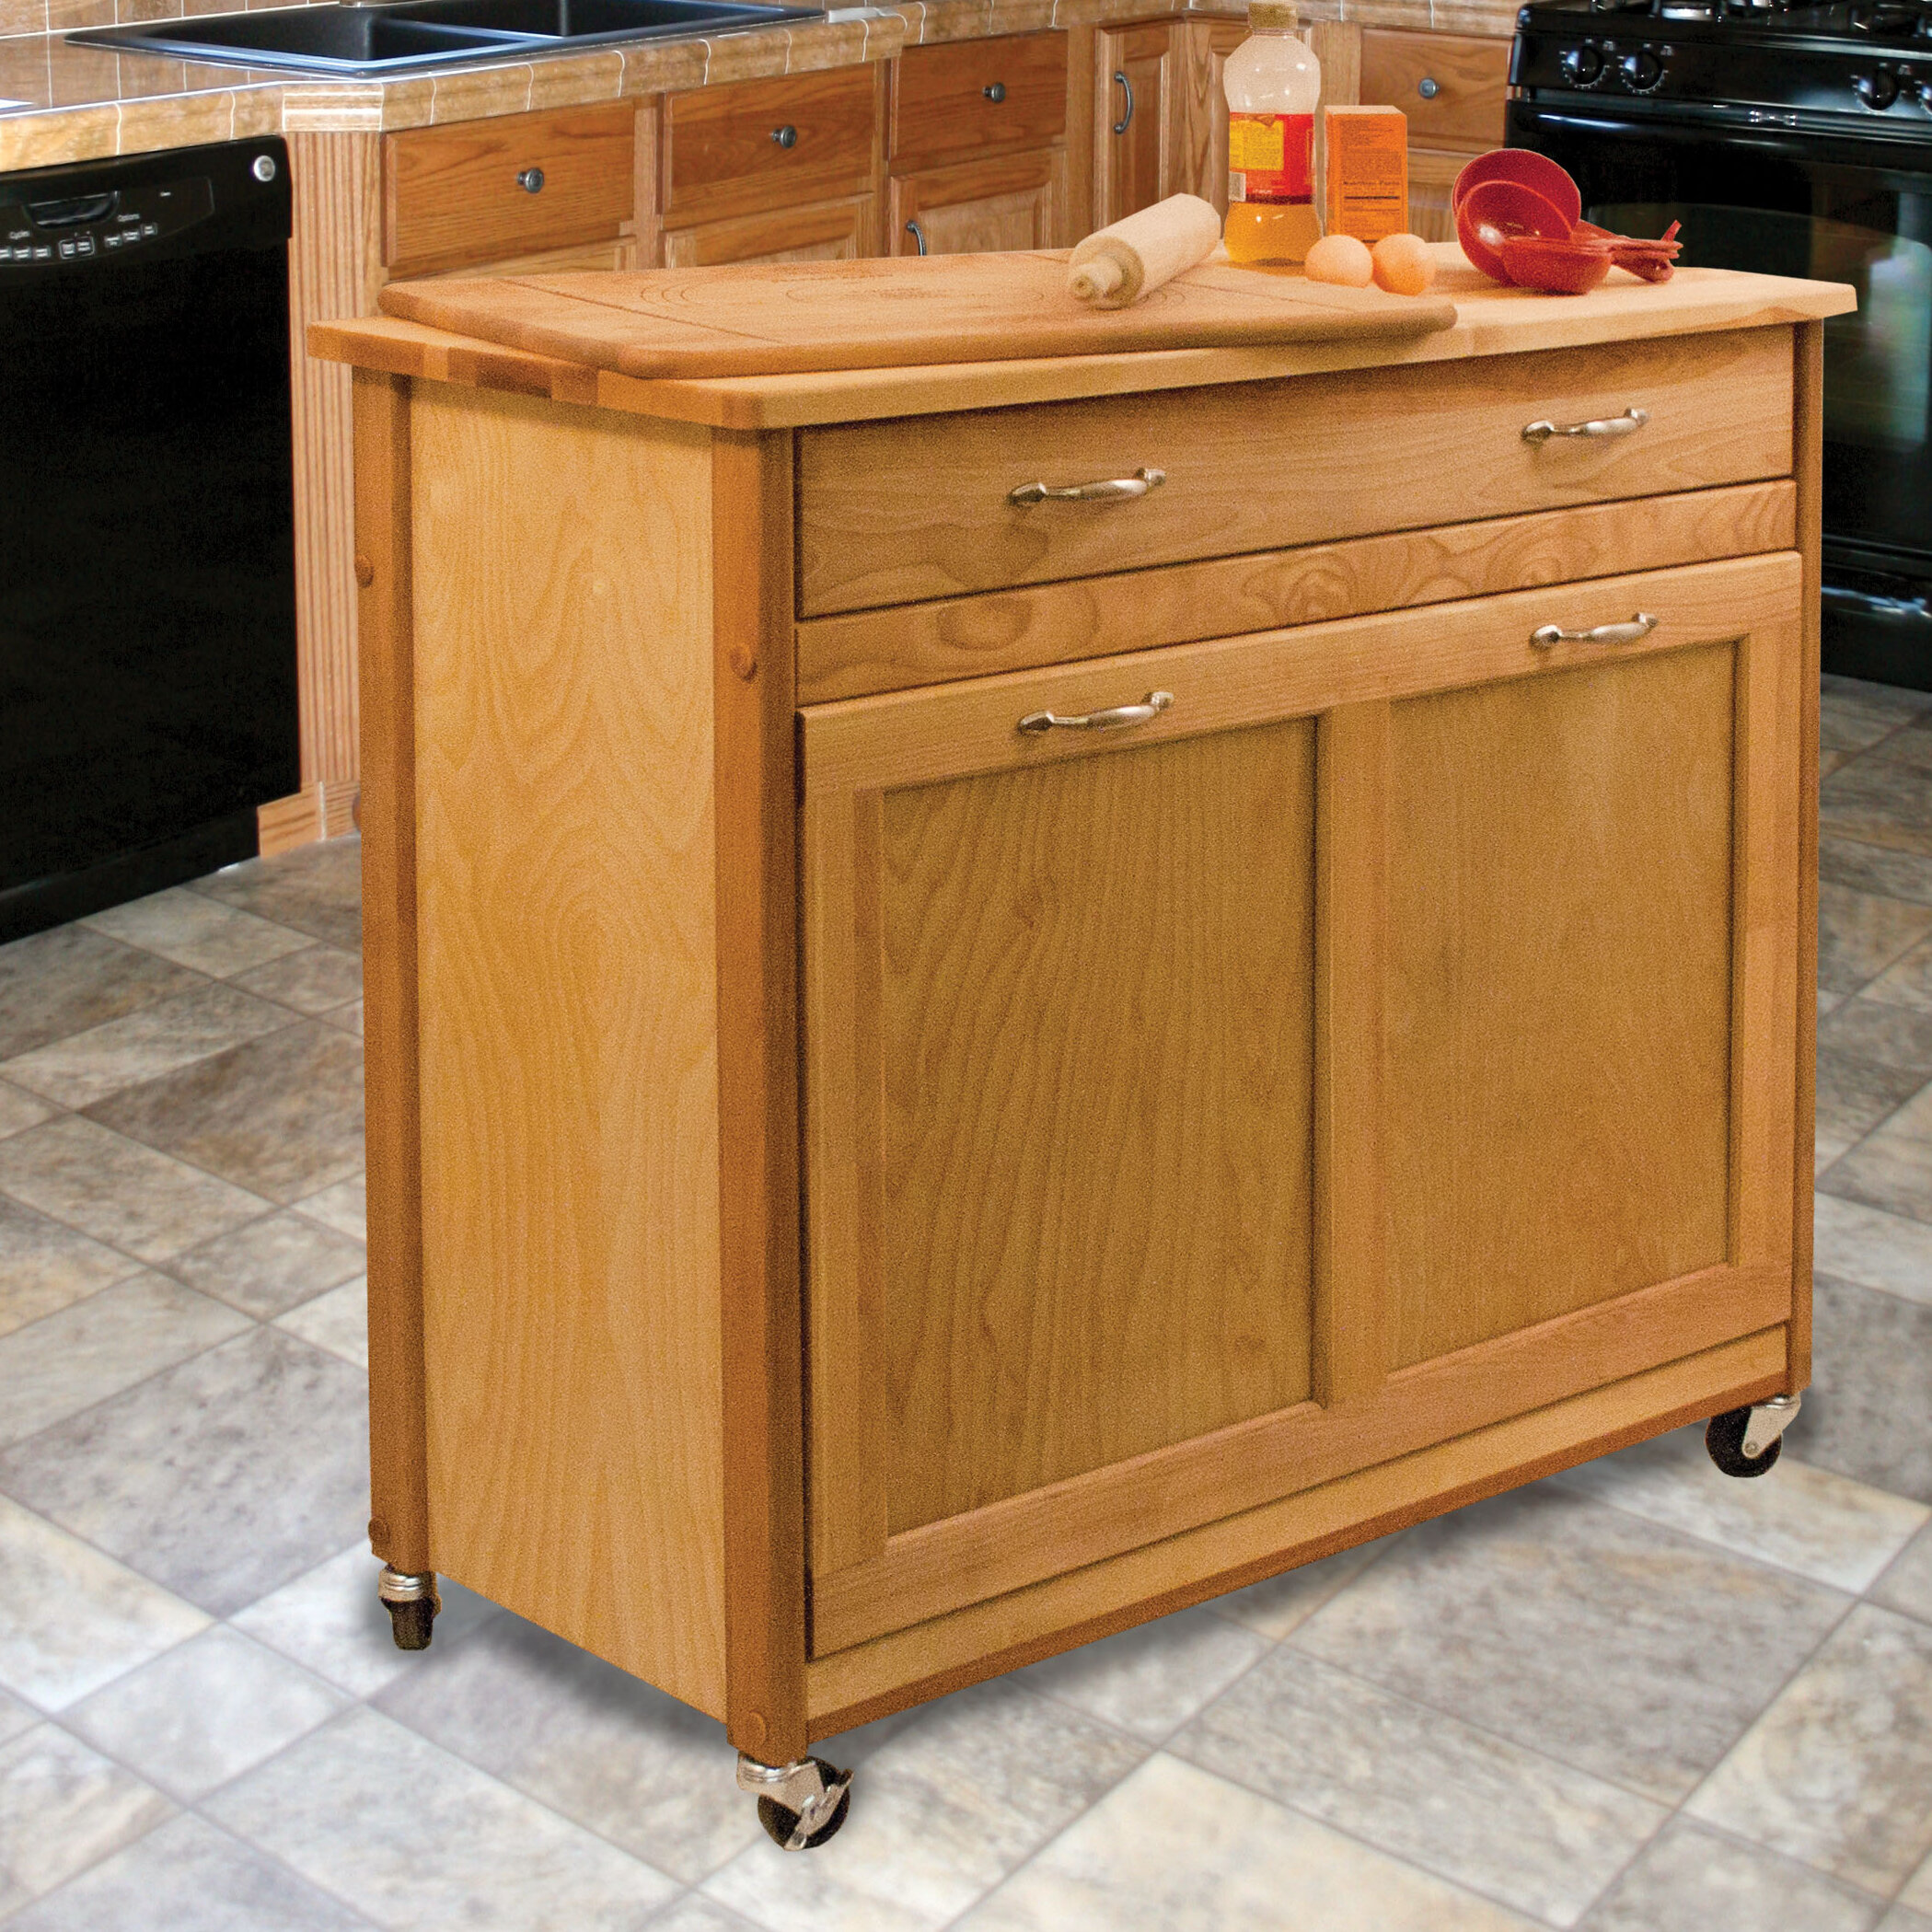 Millwood Pines Triche Pull Out Trash Kitchen Island With Butcher Block Reviews Wayfair